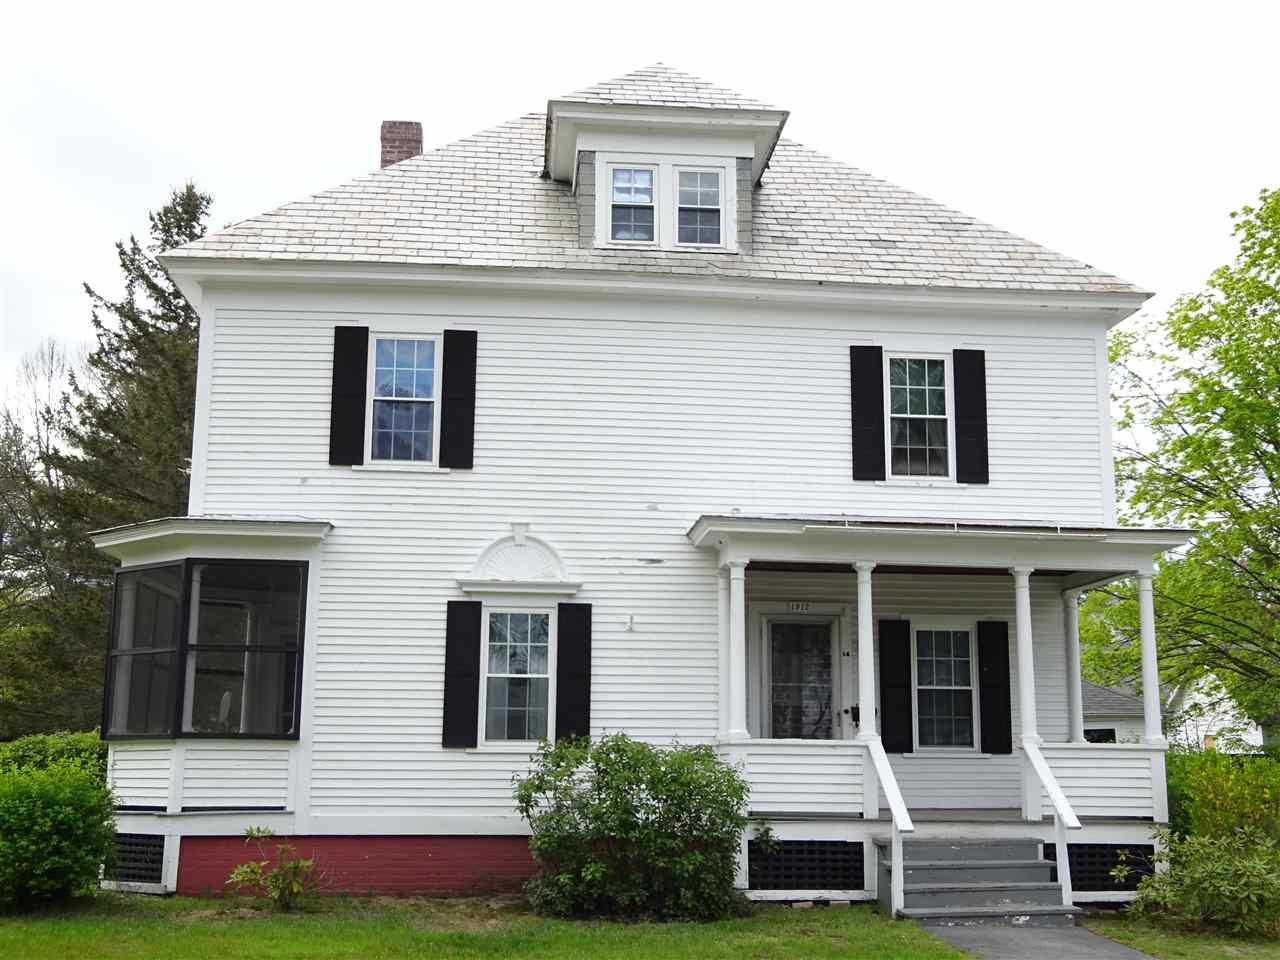 14 Fairview St Keene Nh Mls 4633346 Better Homes And Gardens Real Estate